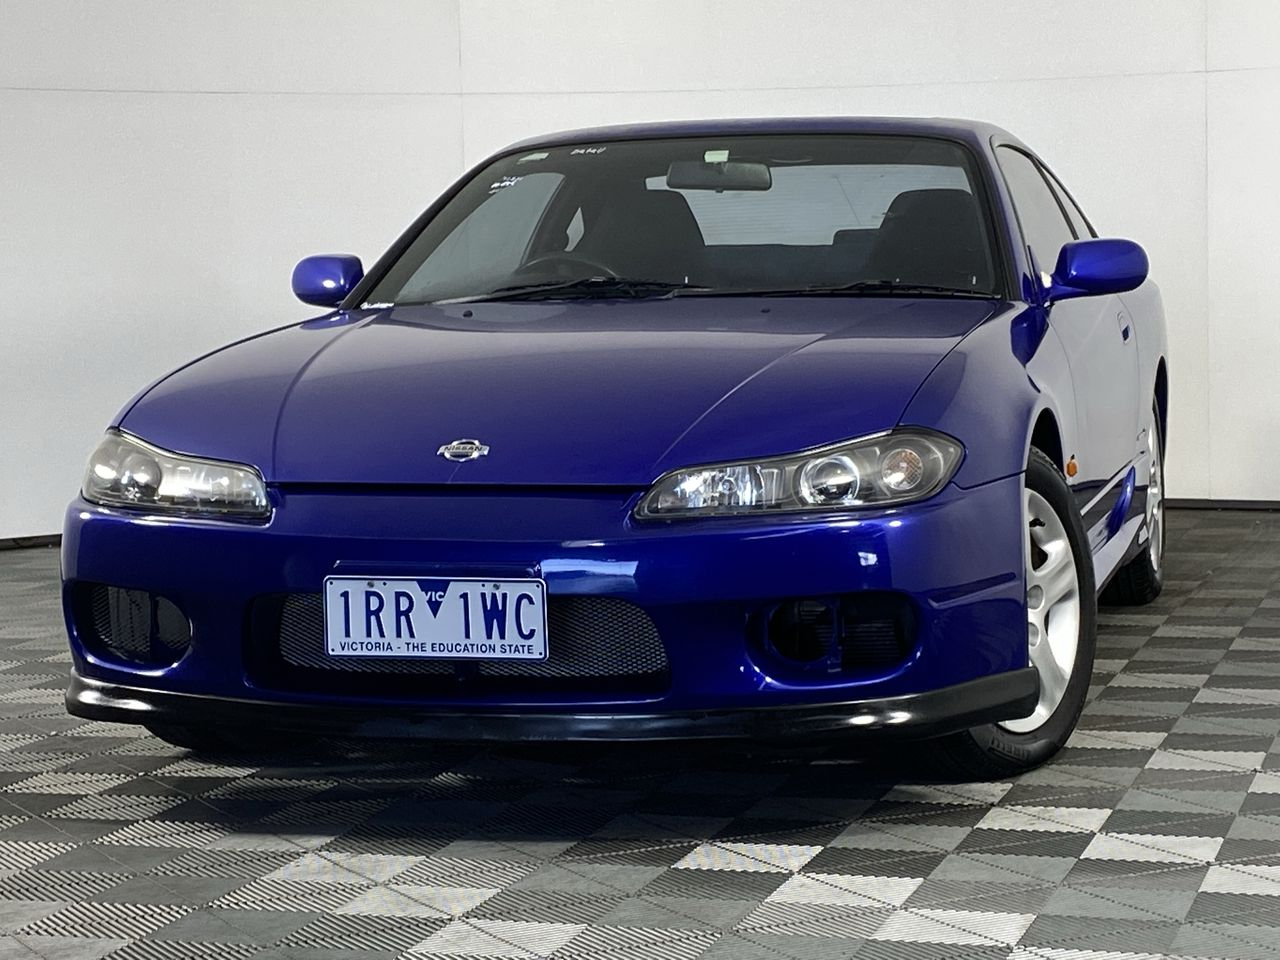 2001 Nissan 200 SX SPEC R S15 Manual Coupe(WOVR+INSPECTED)